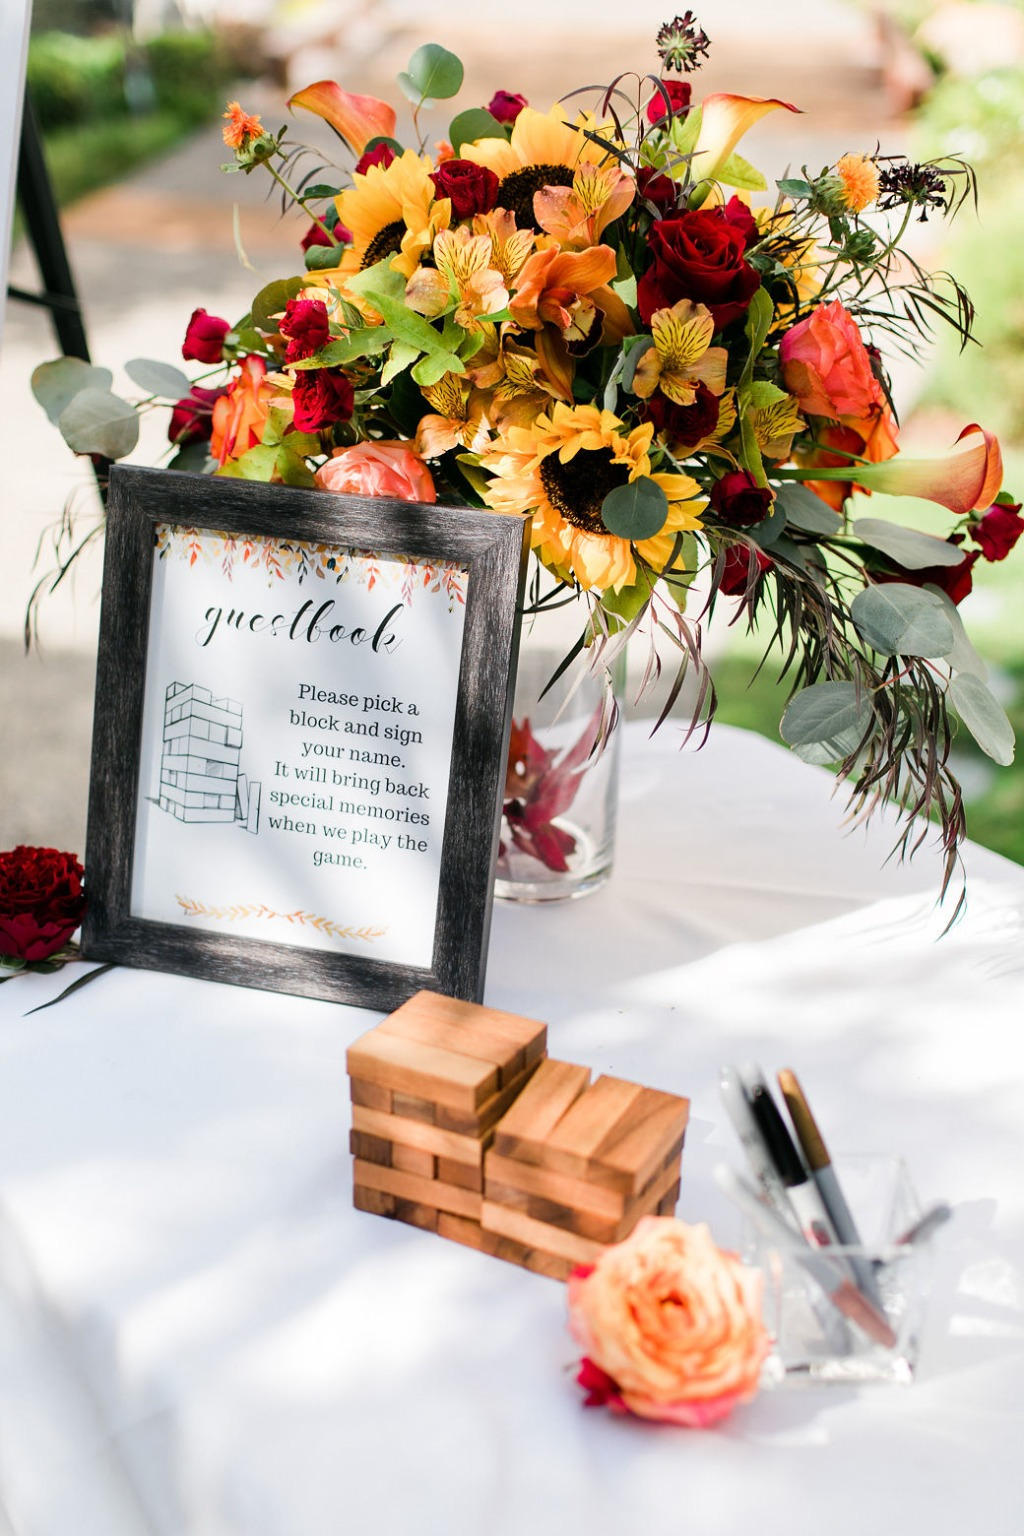 Looking for some unique ways to do a guestbook? Our creative couple decided to let their guests sign jenga blocks! Now they can read